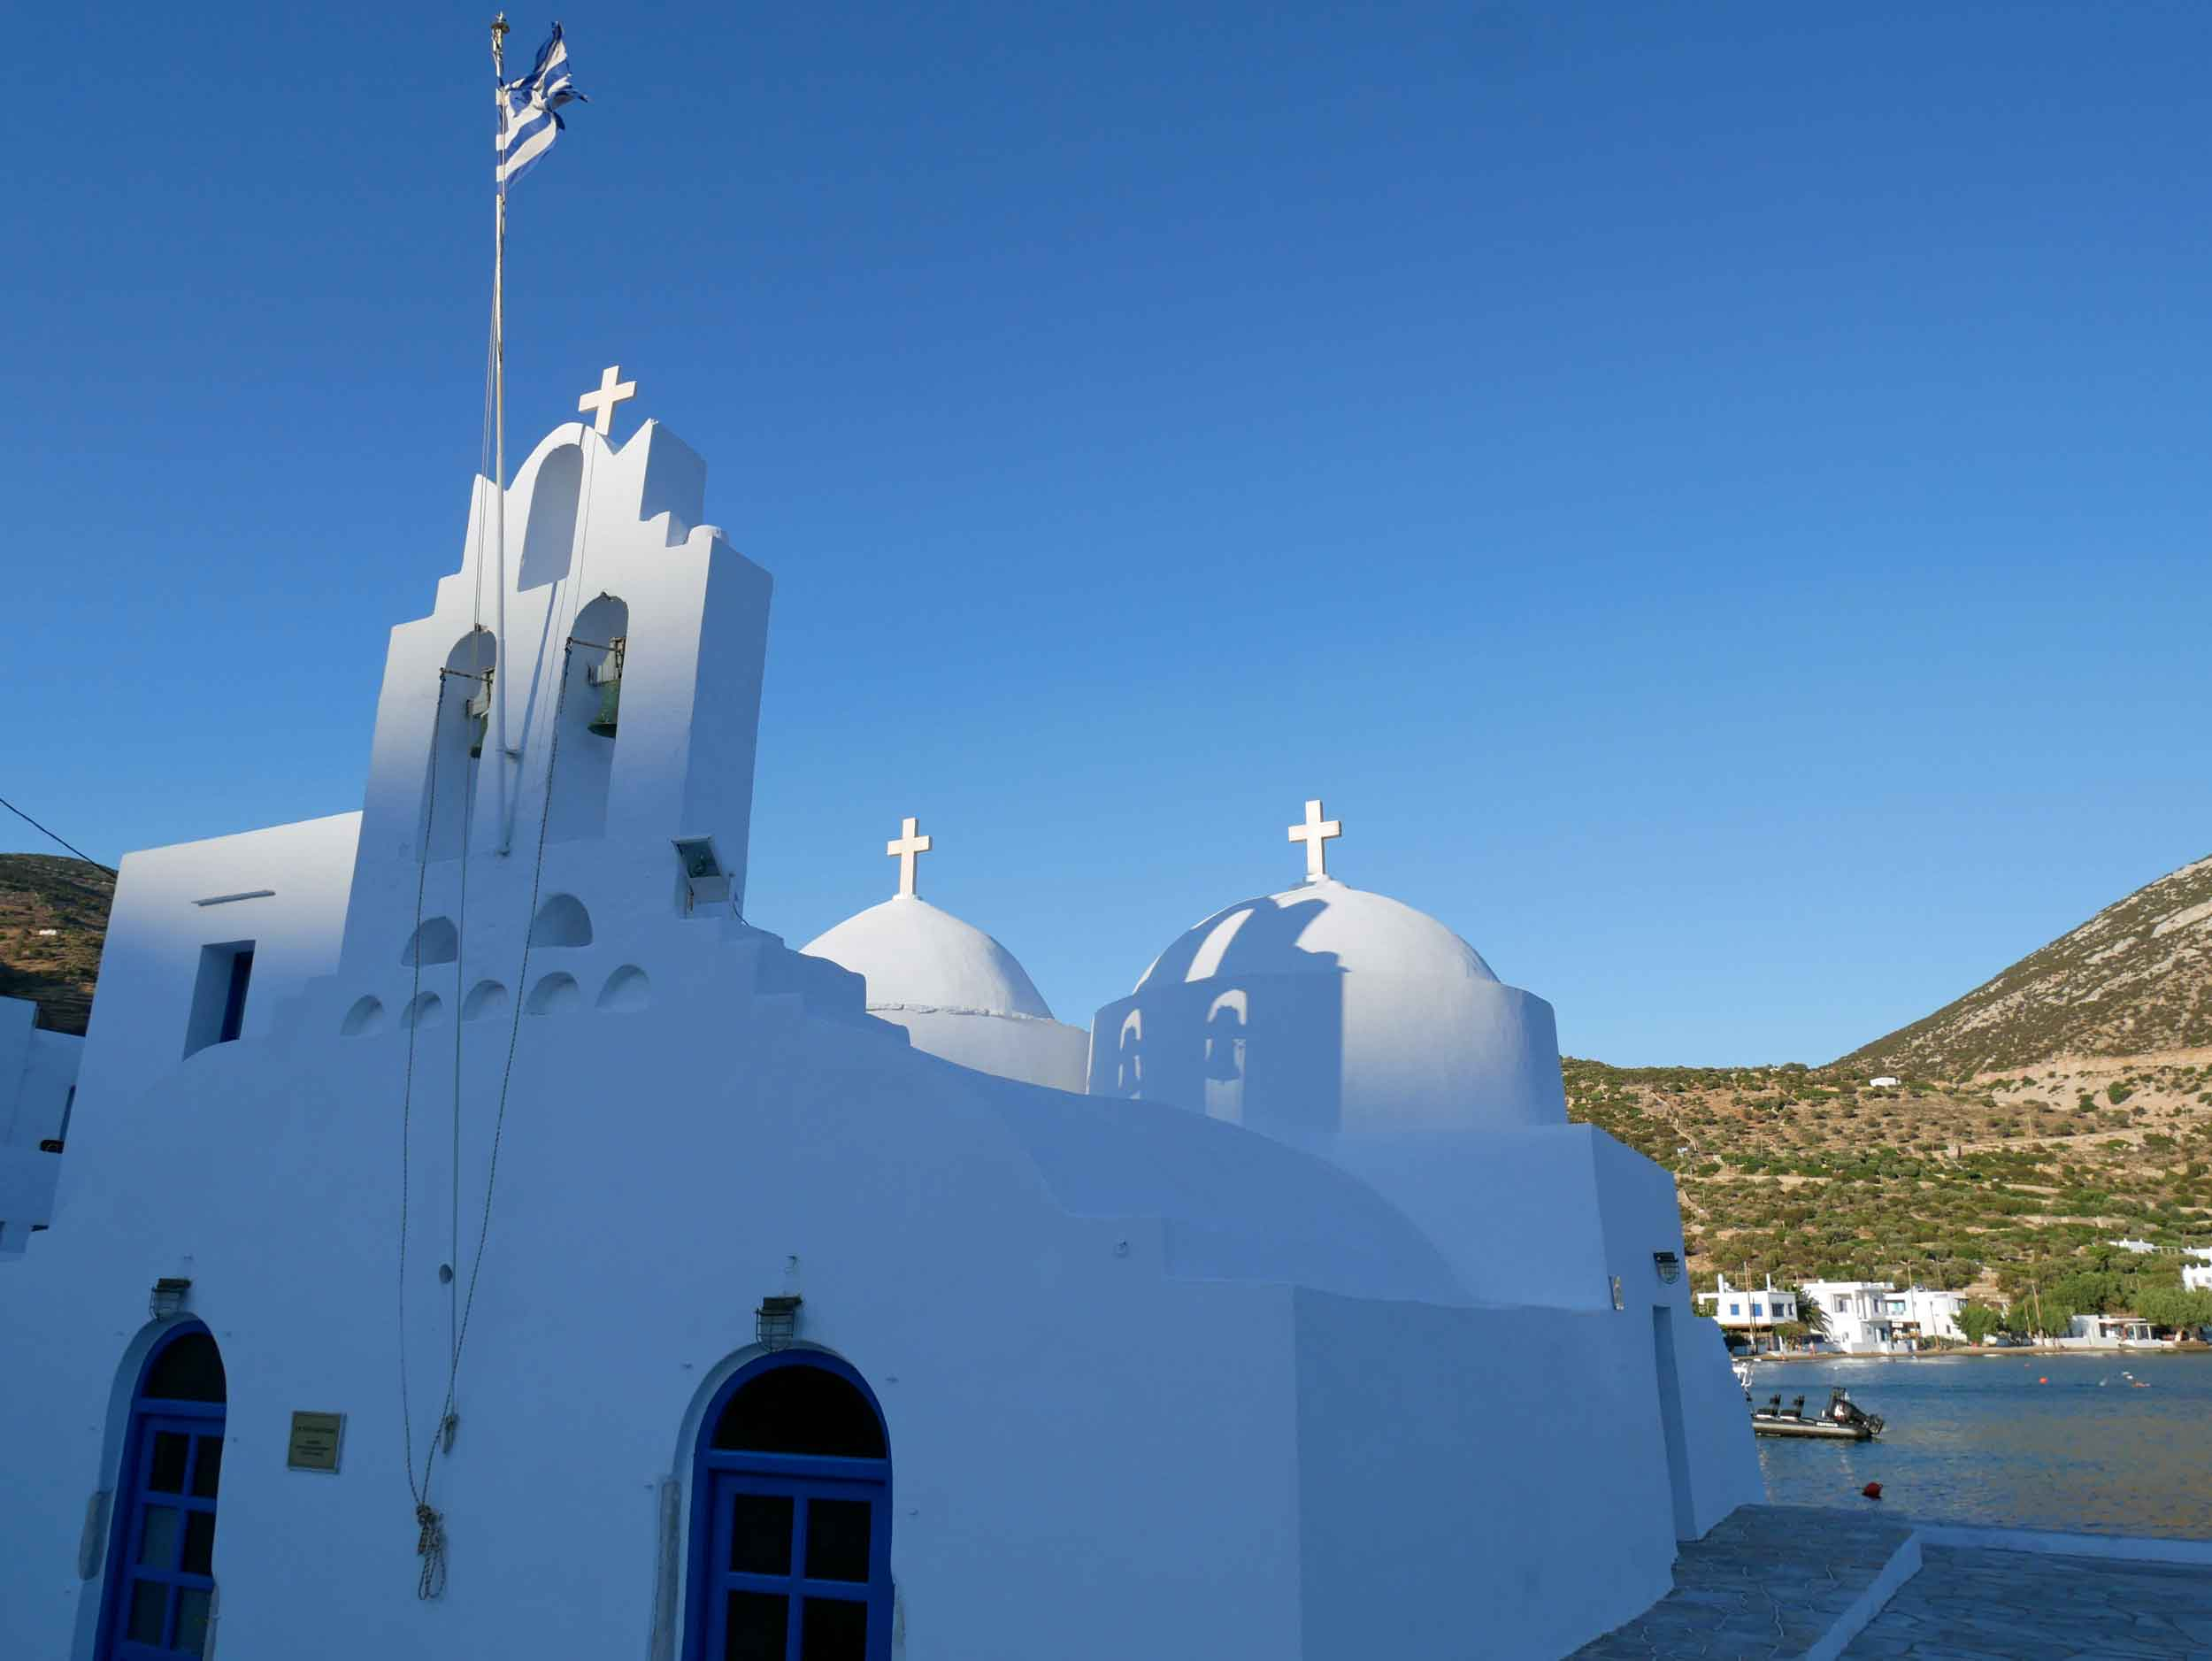 The beautiful church on Vathi bay catching the last rays of sunlight.